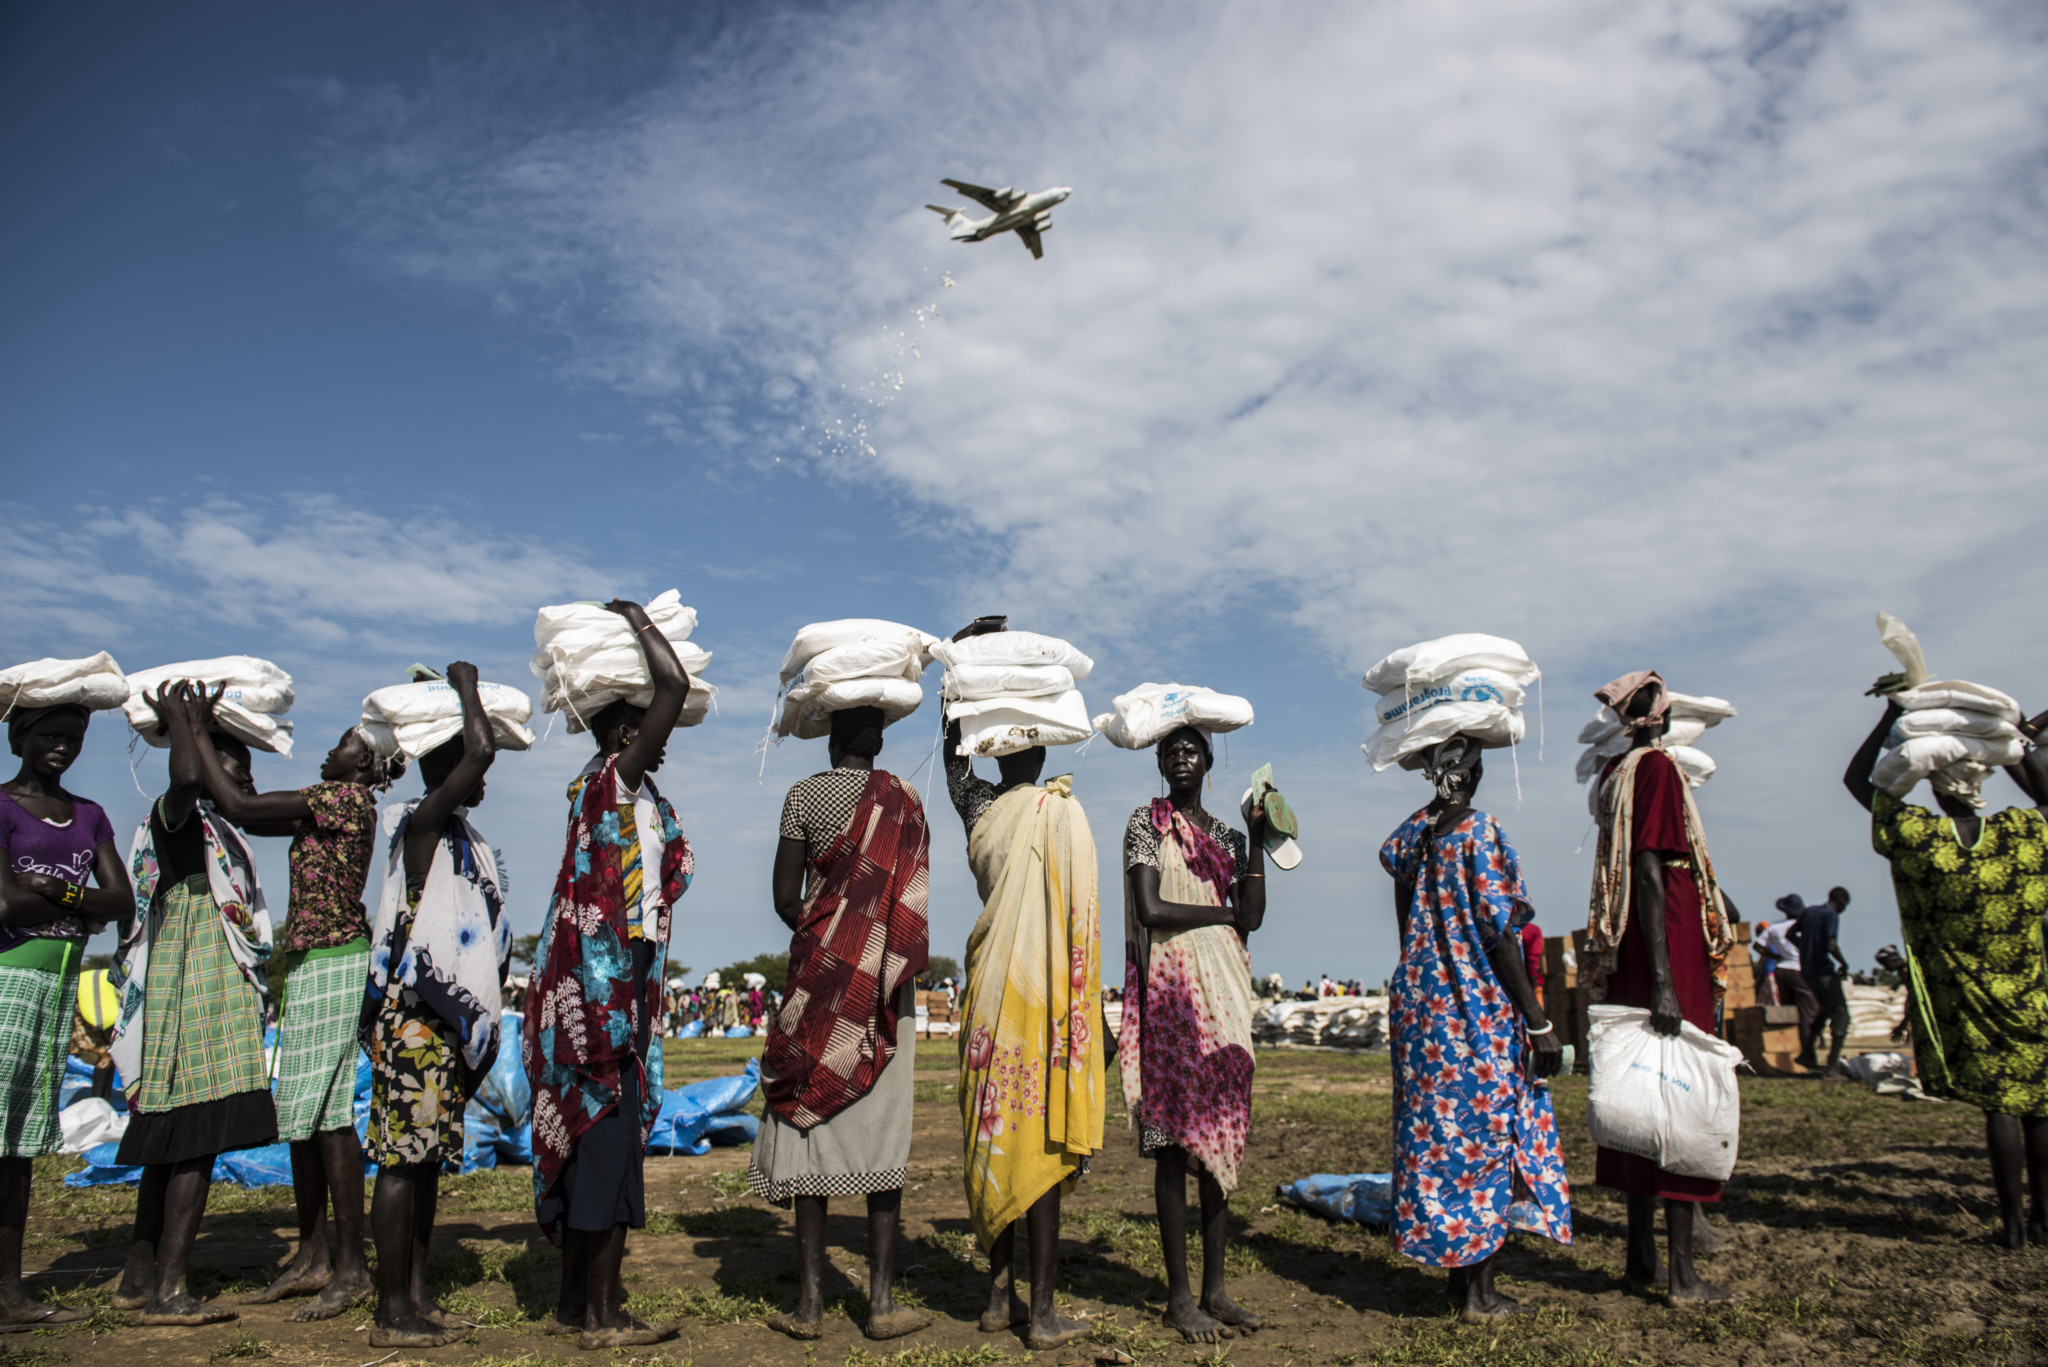 Resilience of Children: Planes with the World Food Program conduct food drops to help aid new internally displaced Southern Sudanese, who were recently displaced from Leer, Mayangi, and Koch to the  area of Nyal, in Unity State, South Sudan, September 10, 2015.  Because of ongoing fighting throughout South Sudan, civilians have been unable to till their land and plant crops, and aid organisations have been unable to deliver food. In a rare window of peace in the area, WFP has been dropping TK tons of food in Nyal for locals and surrounding villages.   Chuol, 9, from southern Unity State or outside Leer, lives within a host community full of local villagers and other internally displaced with his grandmother and sister. several months ago, his own village was attached, and his father and grandfather were burned alive. He, his grandmother, and sister fled to this area, where they are living on the ground of a host family. (lynsey Addario/Getty Images Reportage)